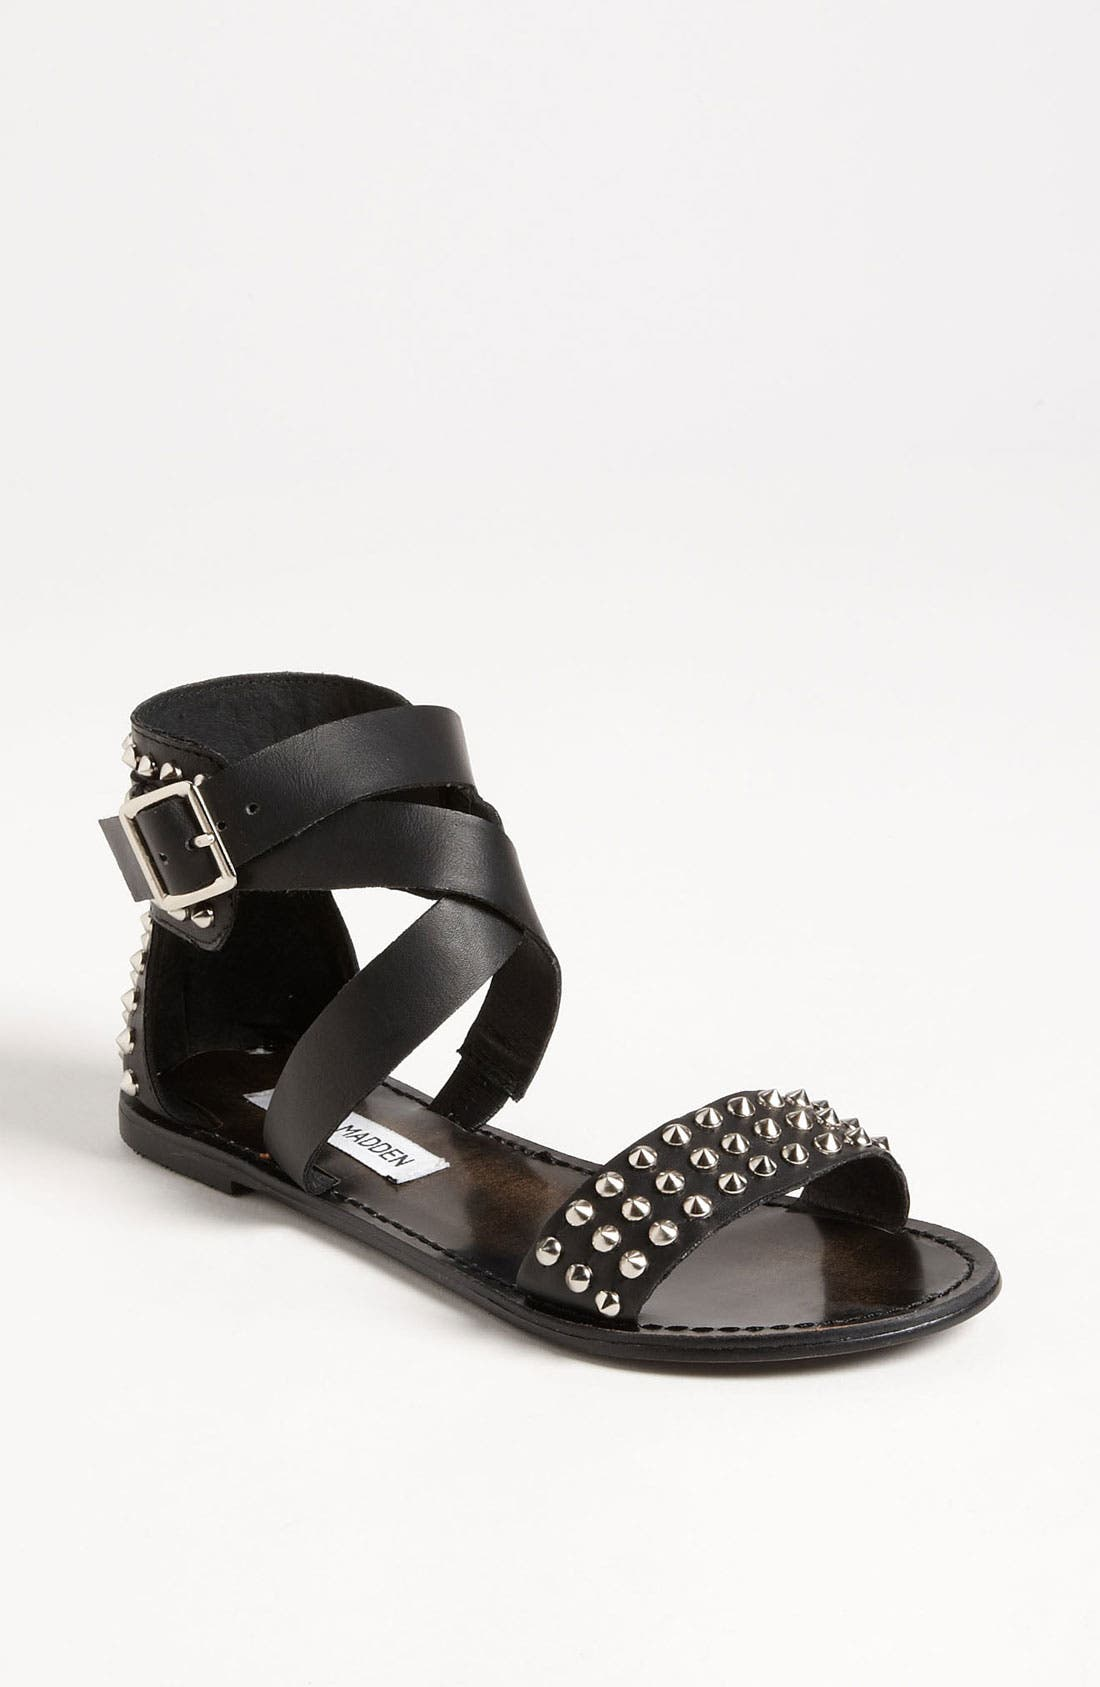 Alternate Image 1 Selected - Steve Madden 'Buddies' Sandal